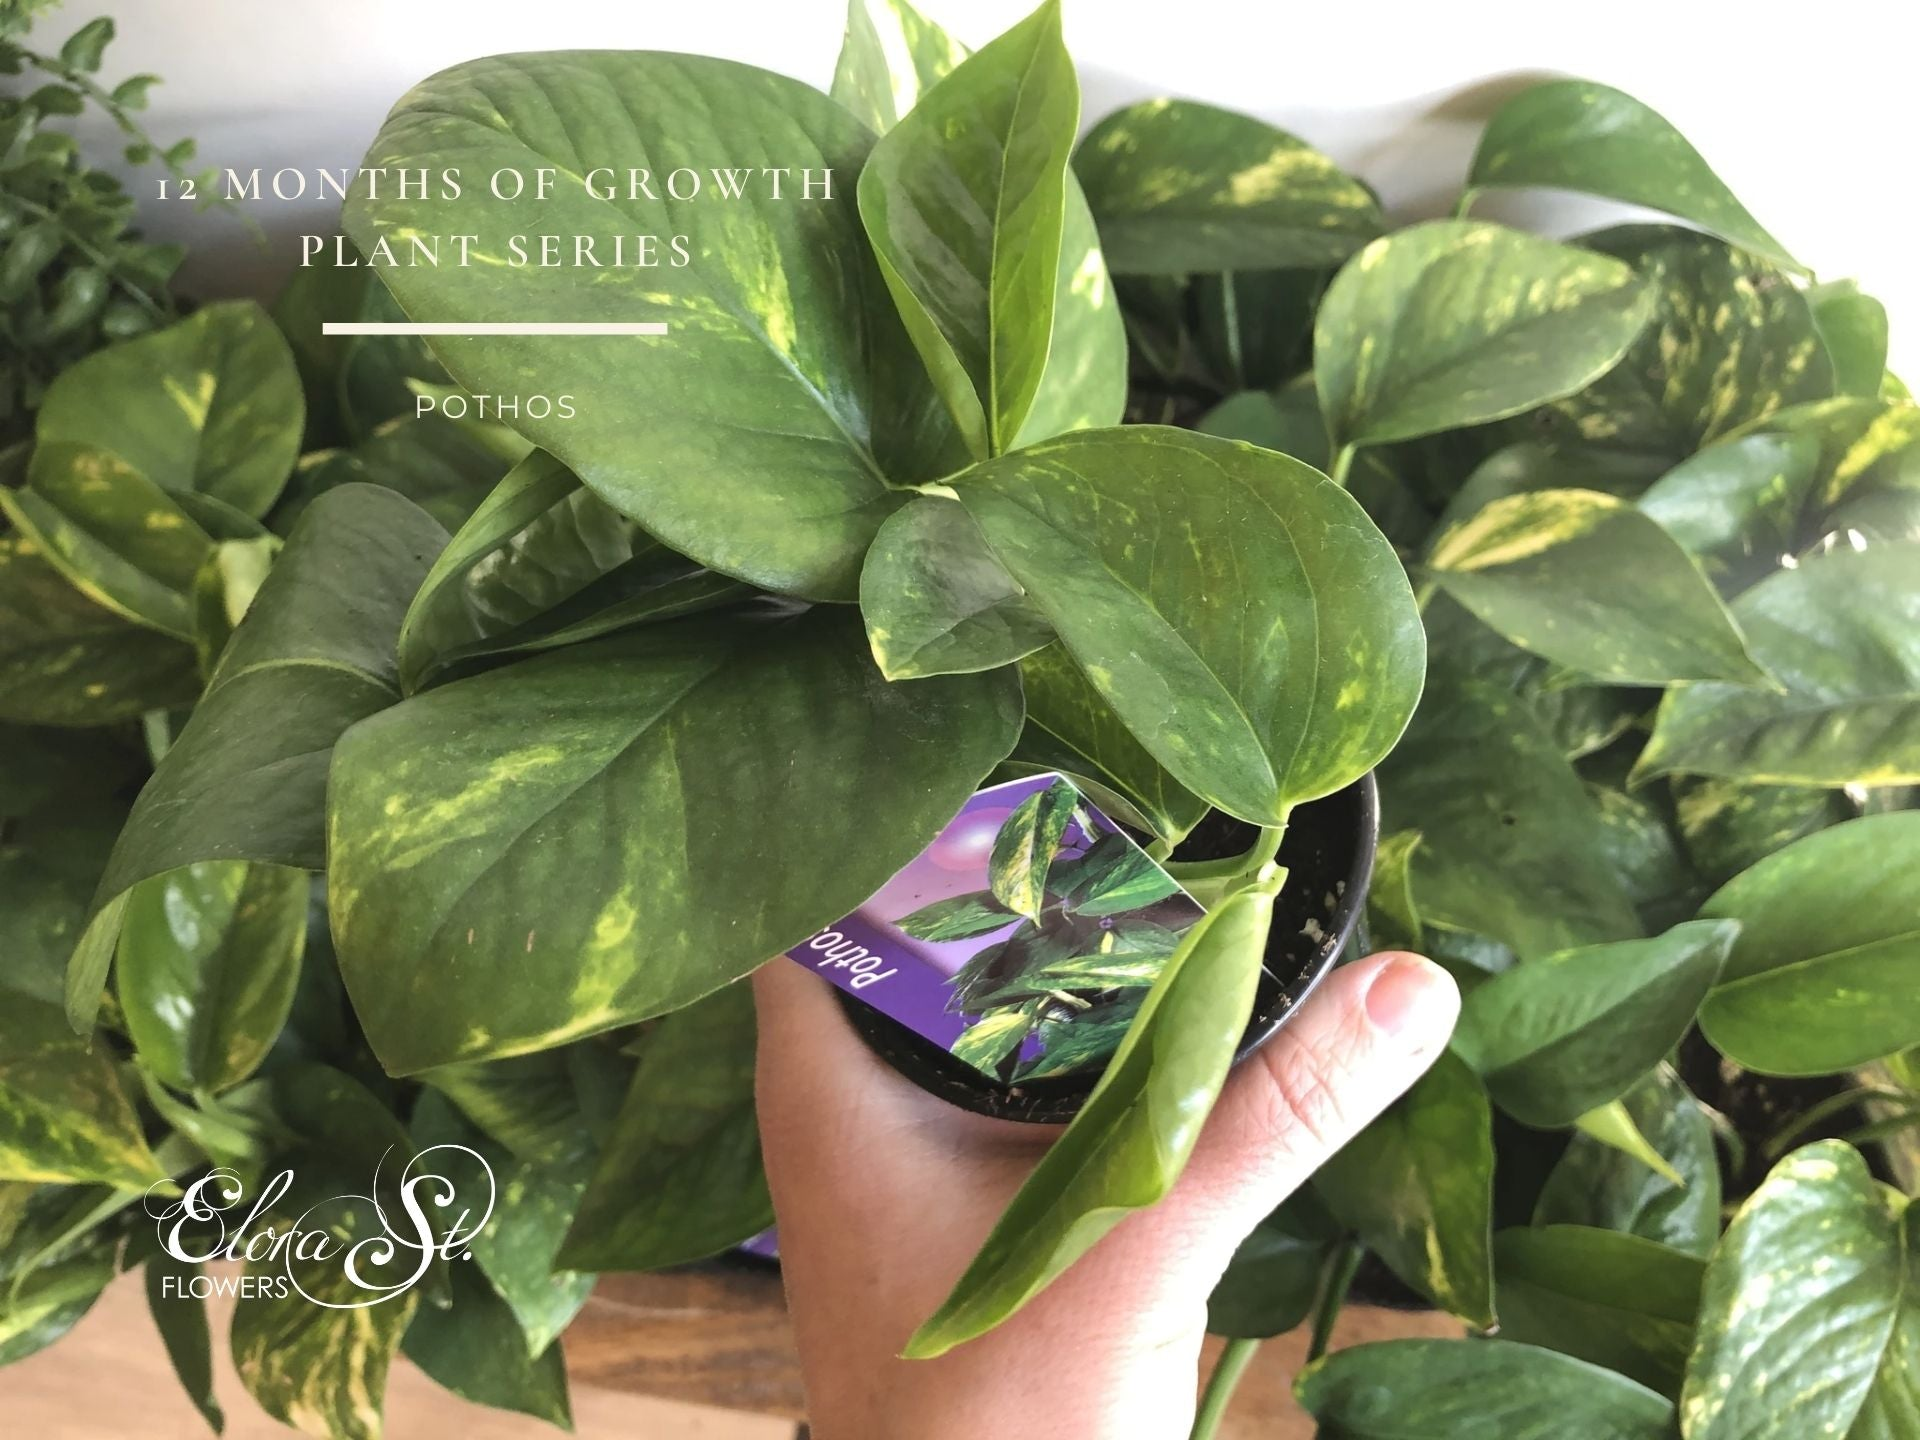 birds eye view of small pothos plant held in female hand